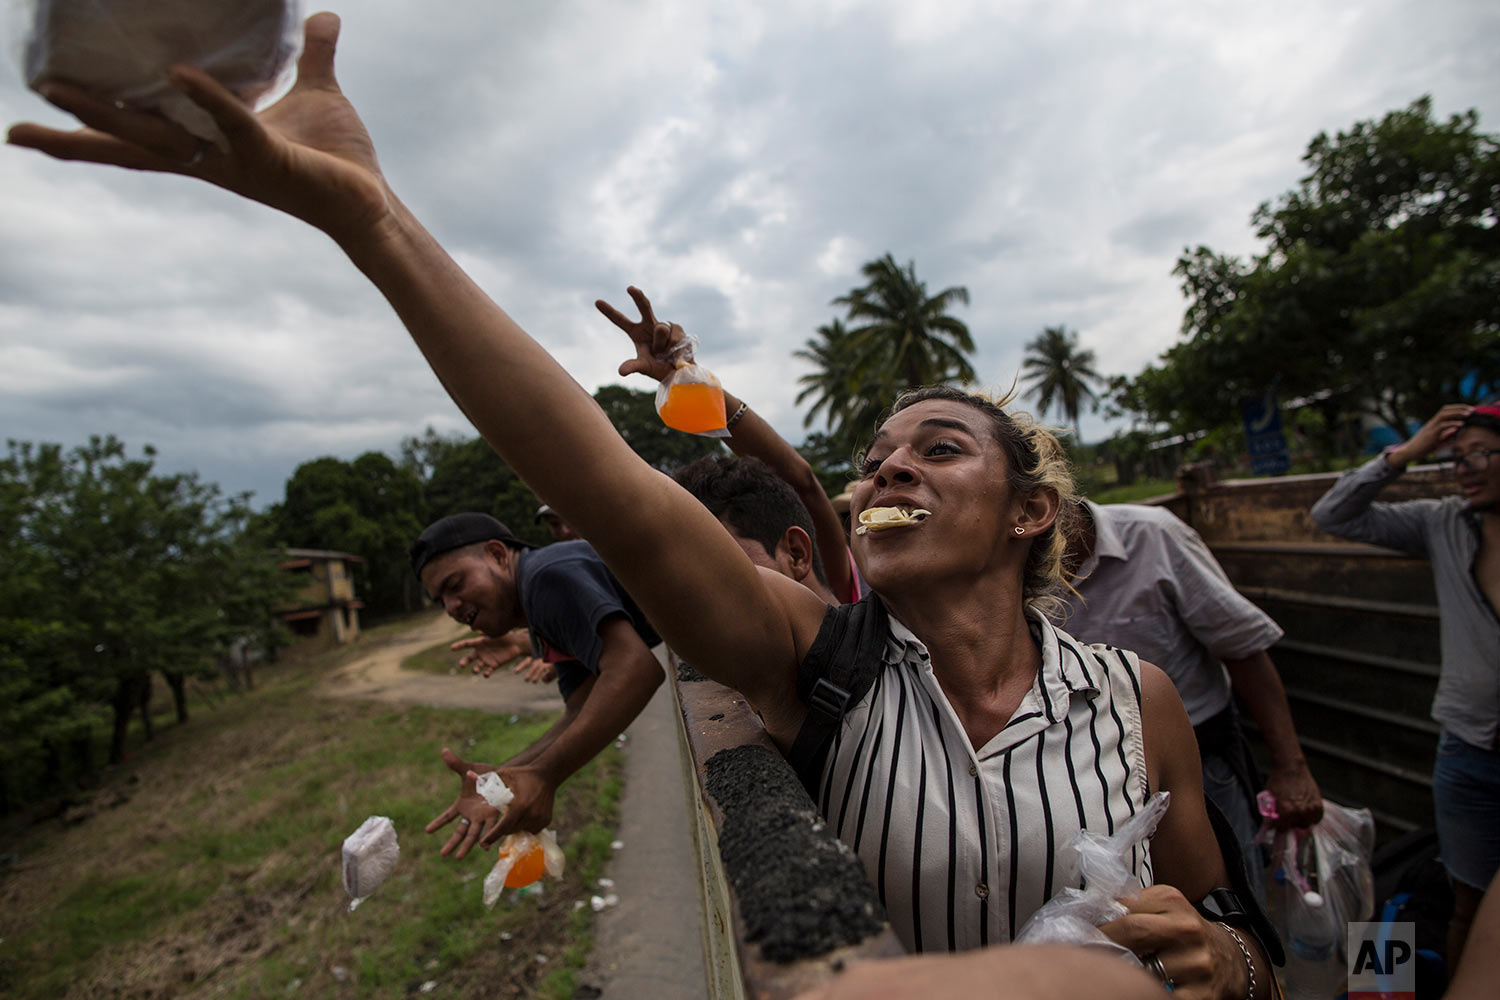 In this Nov. 2, 2018 photo, Honduran transgender Teresa Perez, who is part of a group of 50 or so LGBTQ migrants traveling with the migrant caravan hoping to reach the U.S. border, catches a sandwich tossed by a local, while riding in the back of a truck on the road to Sayula, Mexico. (AP Photo/Rodrigo Abd)